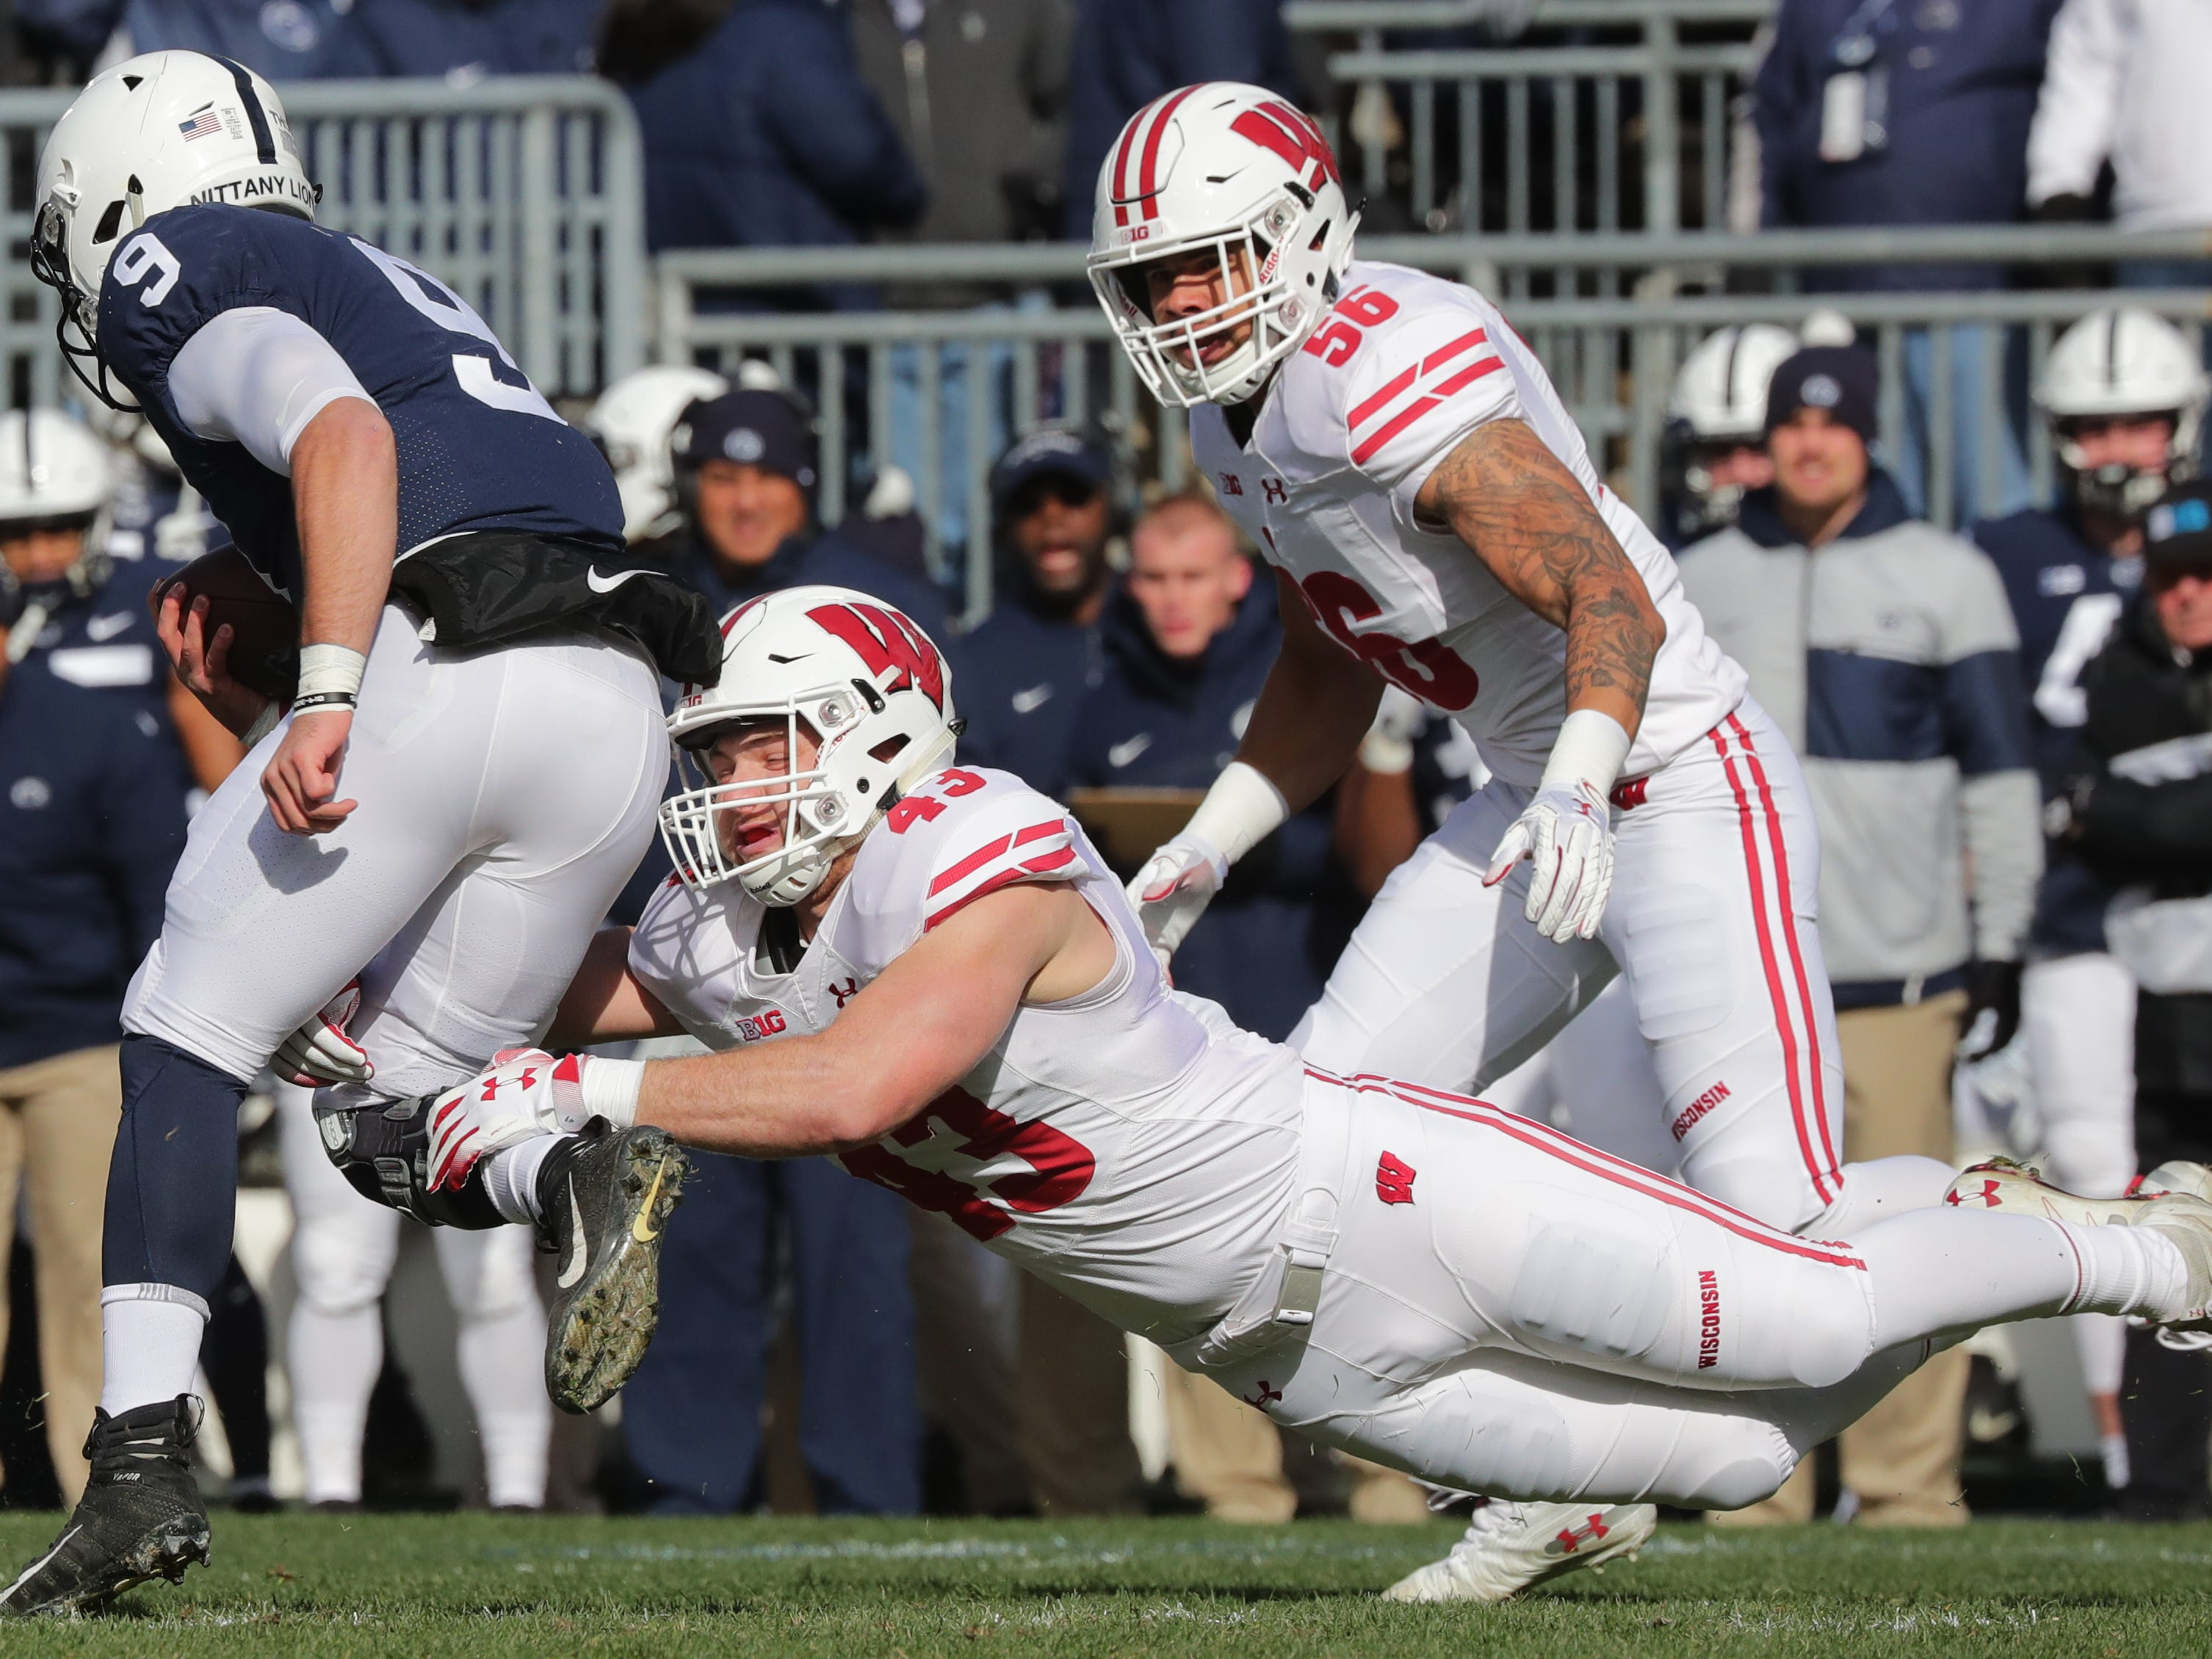 Wisconsin linebacker Ryan Connelly stops Penn State quarterback Trace McSorley after a short gains during the first quarter Saturday.